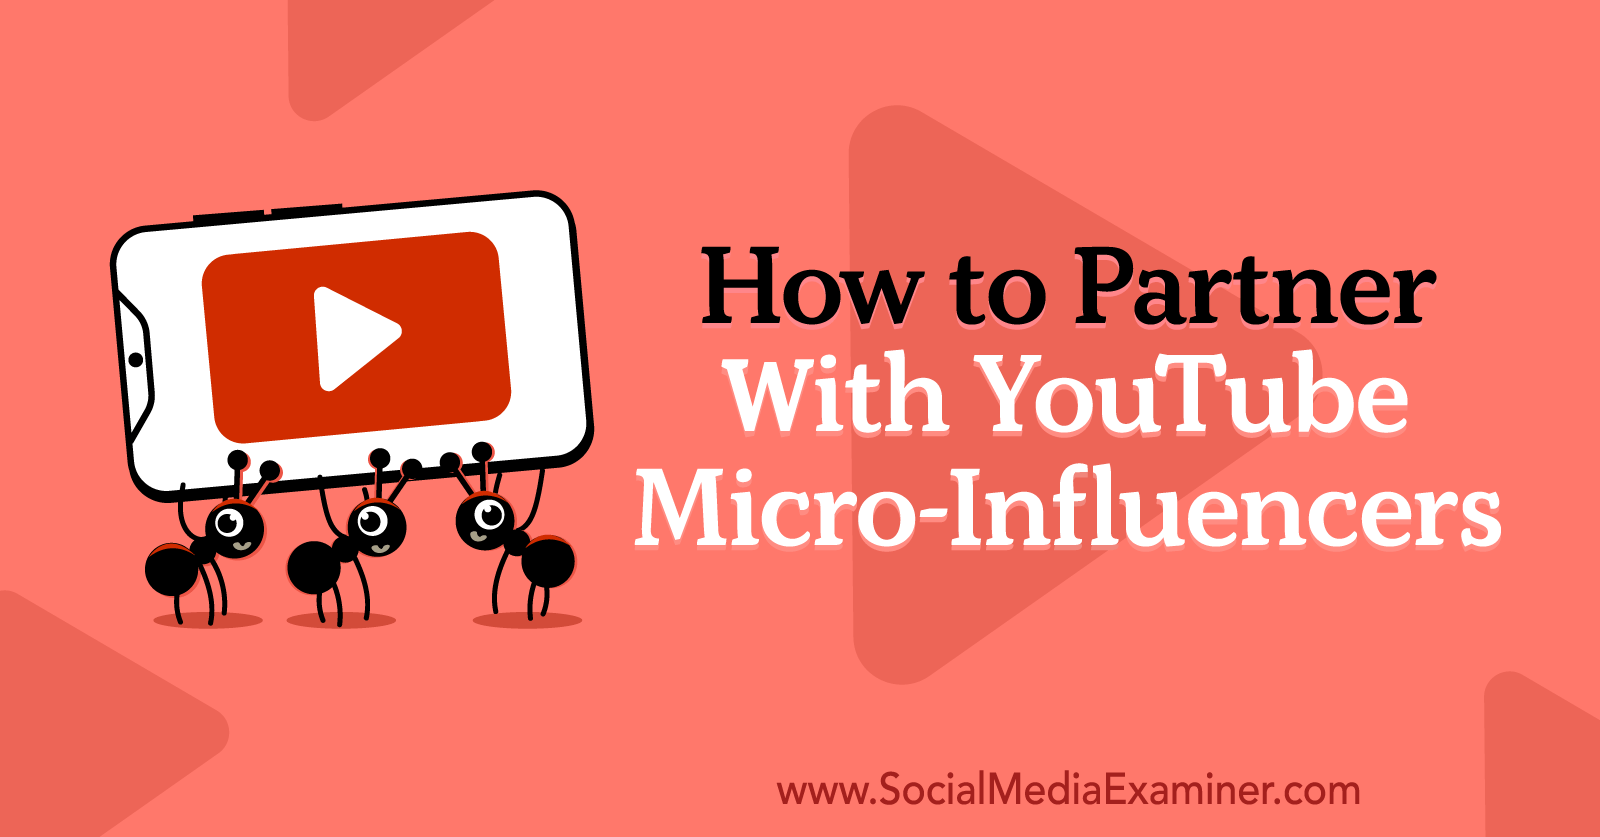 How to Partner With YouTube Micro-Influencers by Anna Sonnenberg on Social Media Examiner.